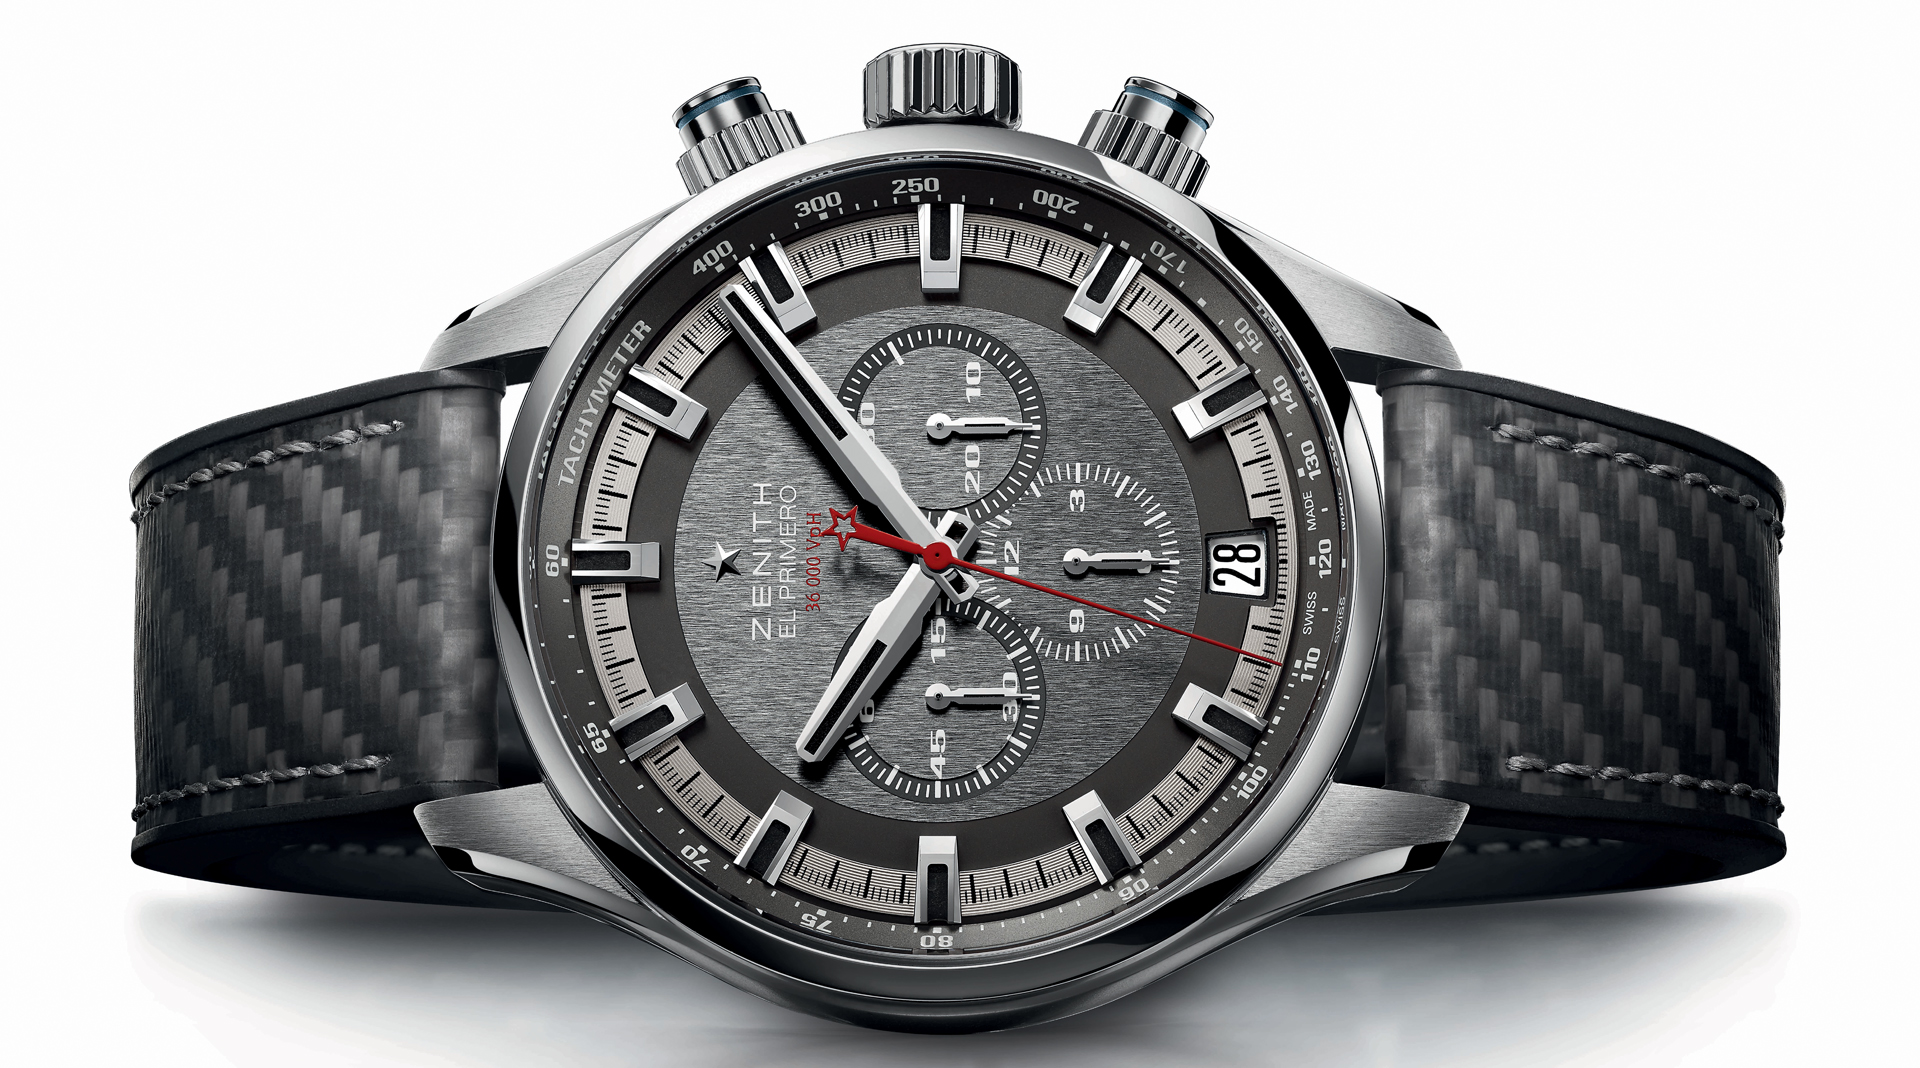 Zenith Chronomaster El Primero Sport Land Rover BAR Team Edition side